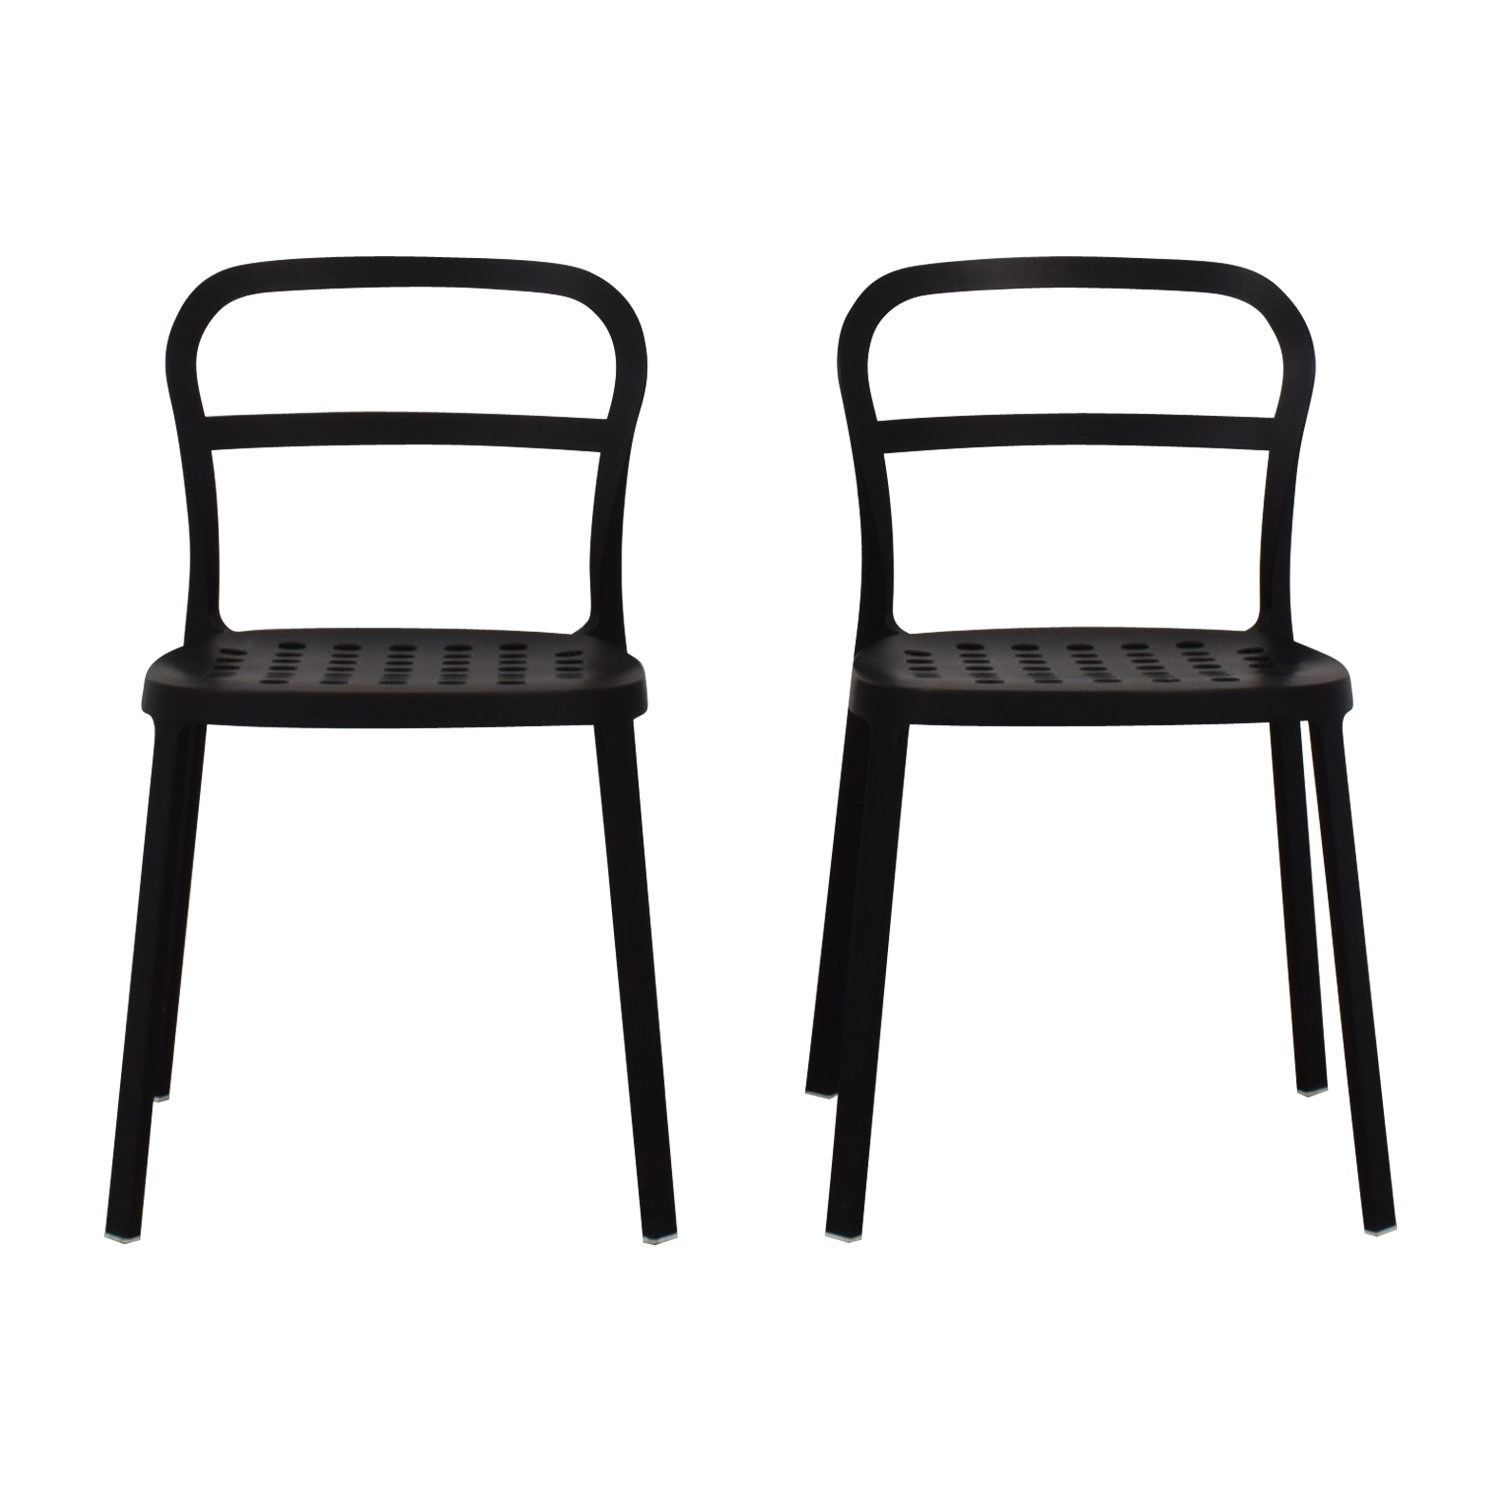 buy IKEA Black Metal Chairs IKEA Accent Chairs